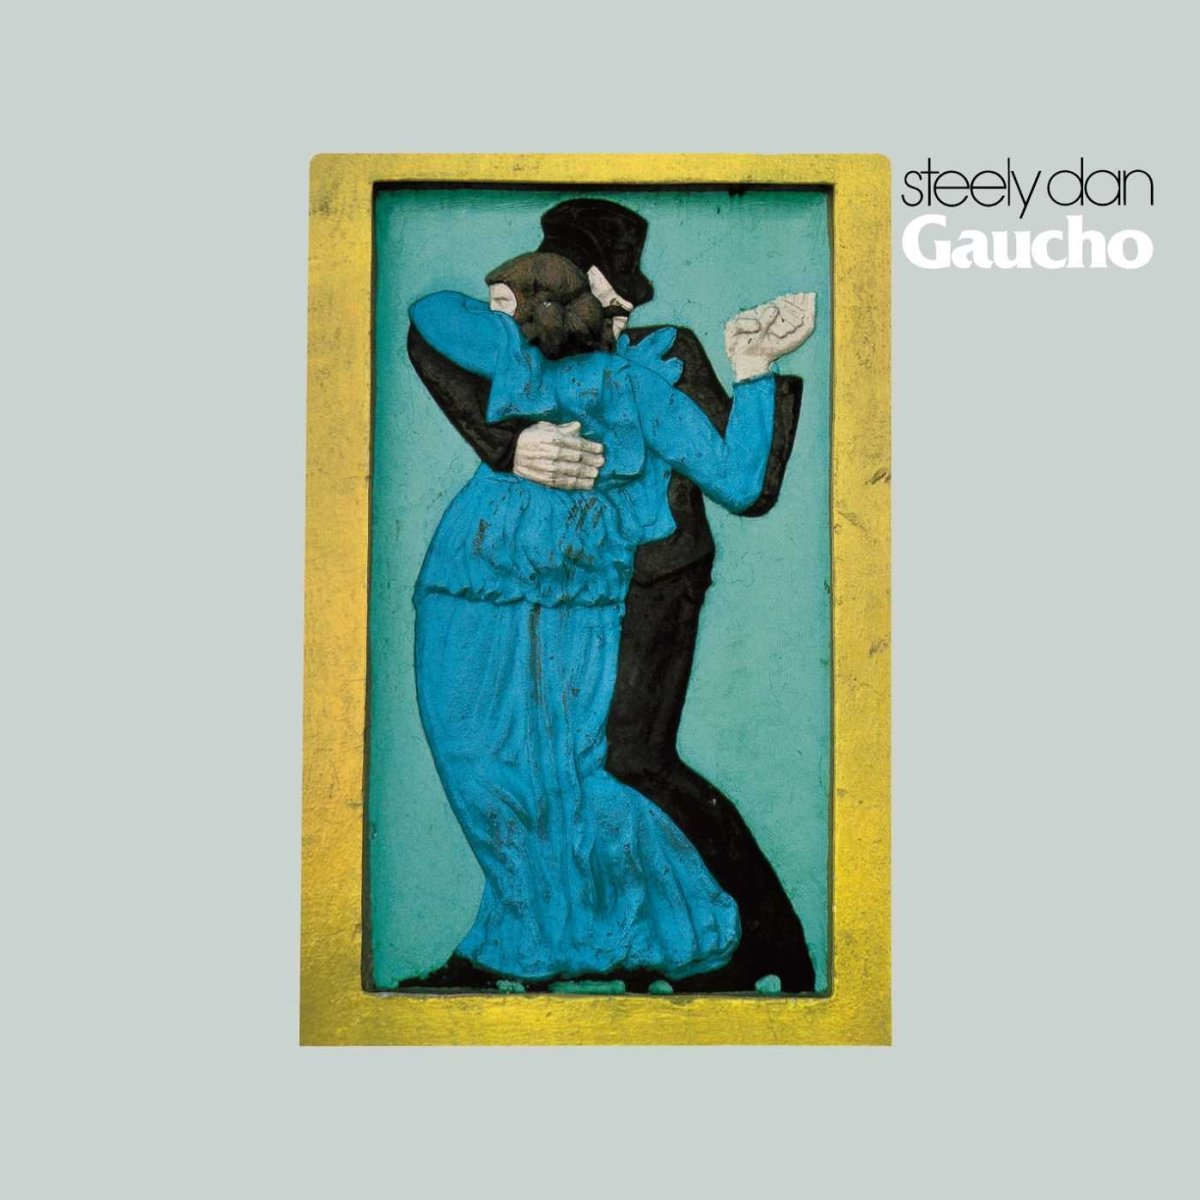 The drum transcription for Gaucho by Steely Dan